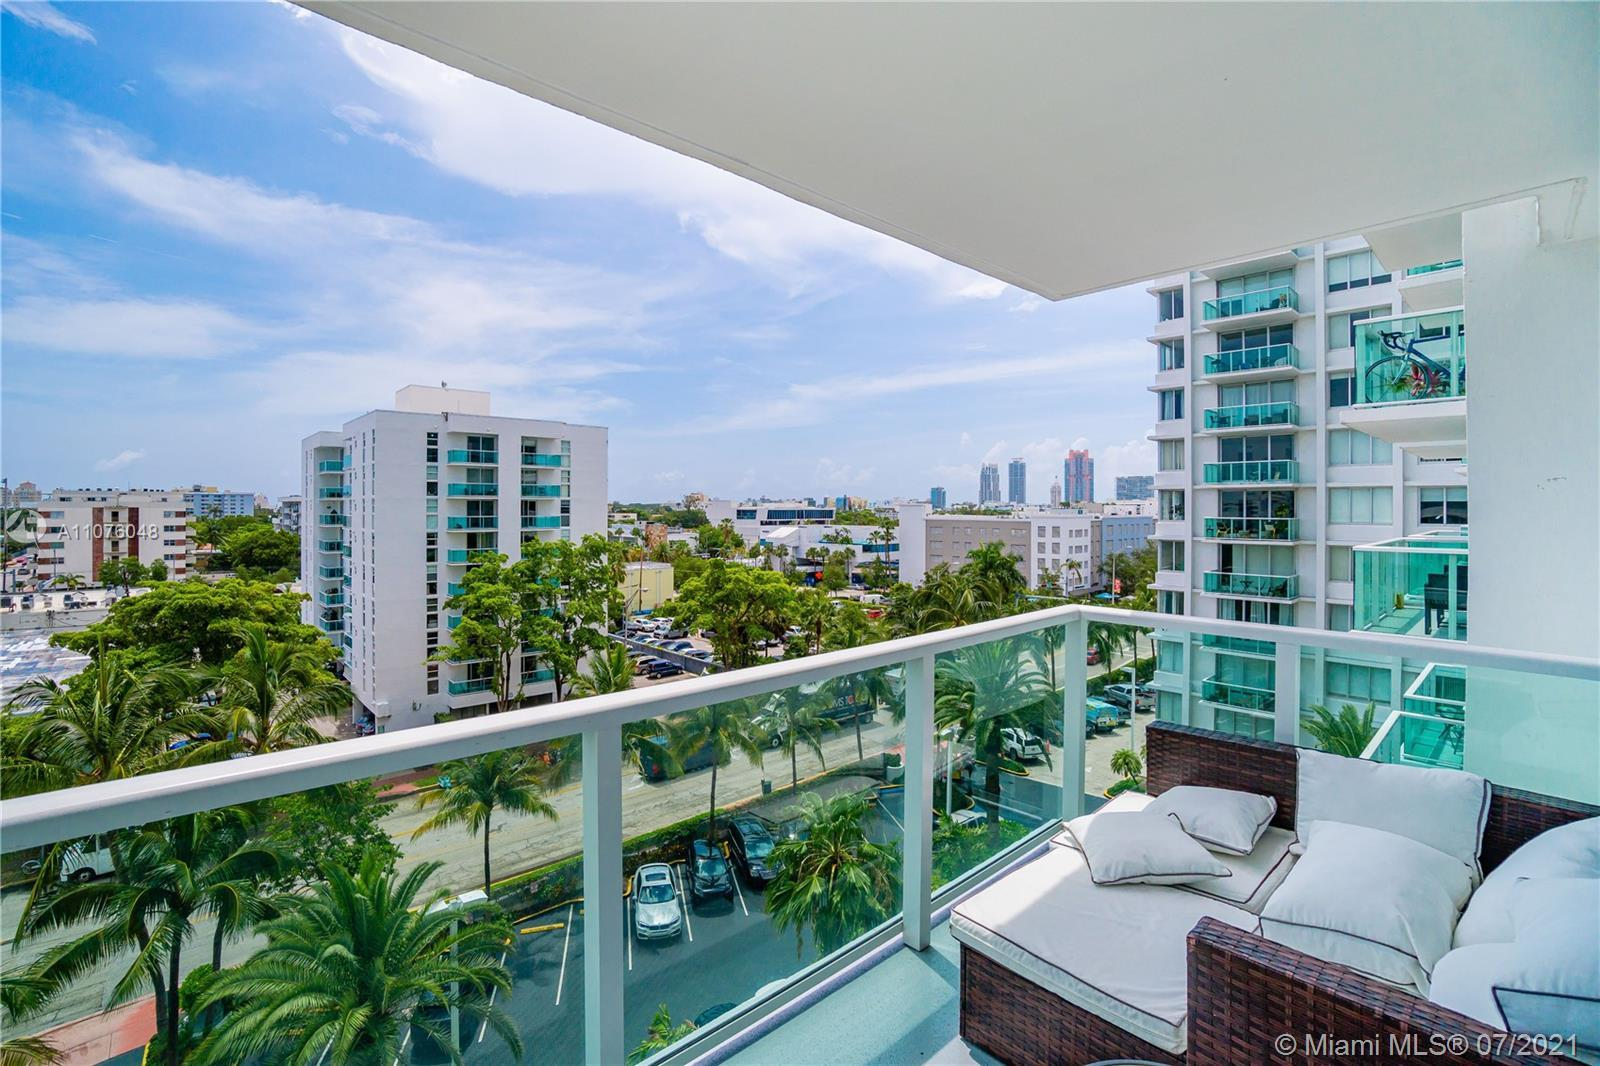 Largest 1 Bd /1.5 Bth & quiet corner unit rarely available at the Mirador 1000 Building. $36k in ASS